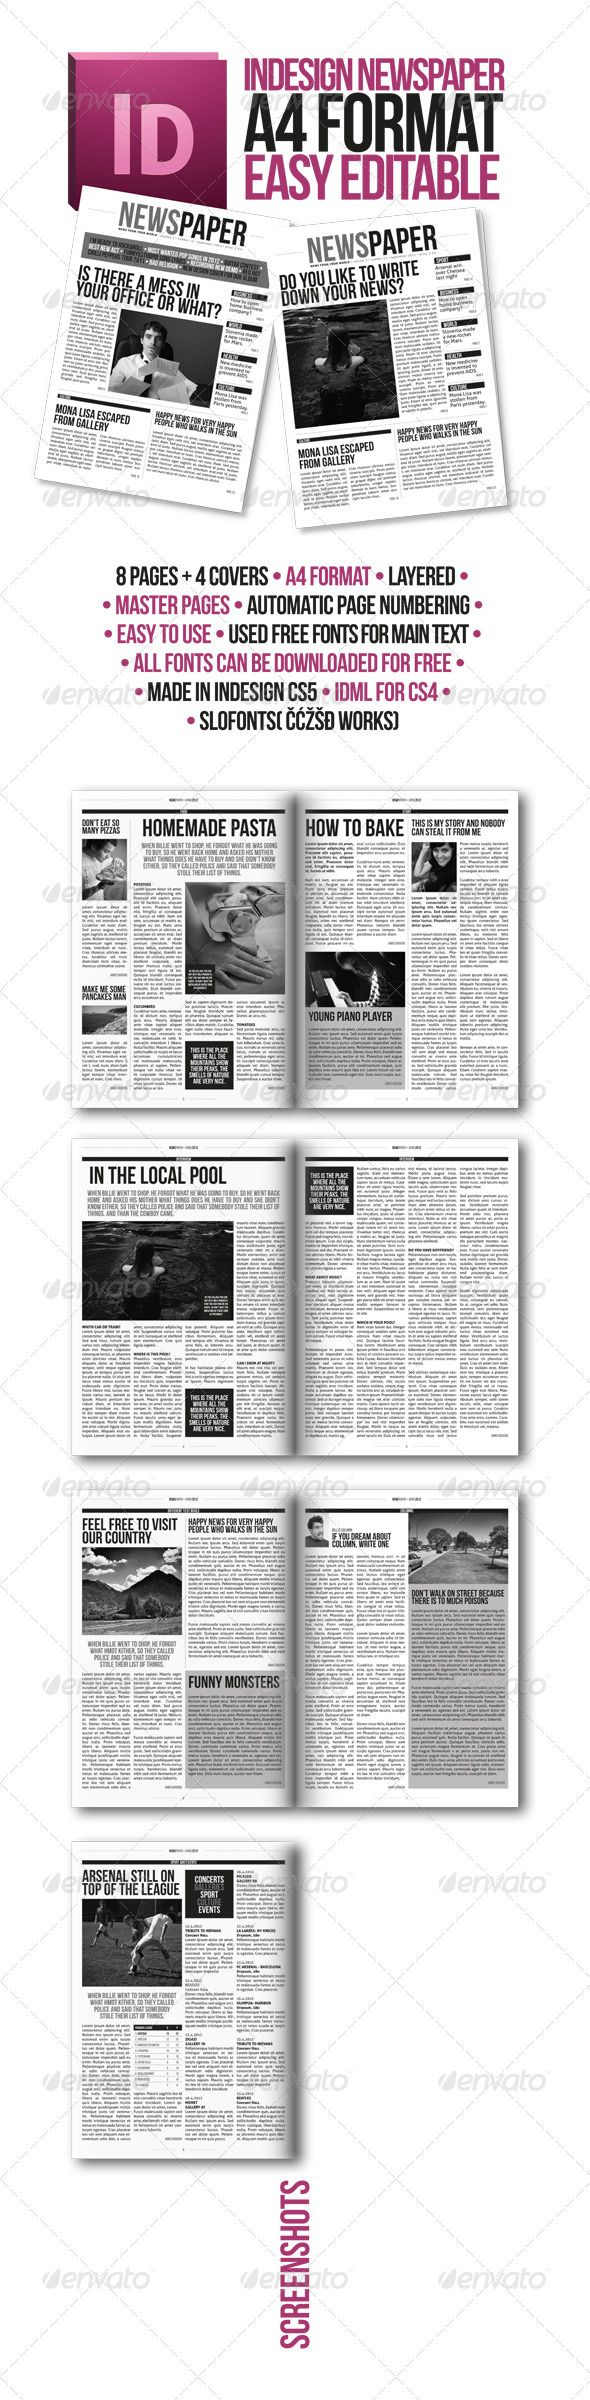 Indesign Modern Newspaper Magazine Template A4 Graphicriver About